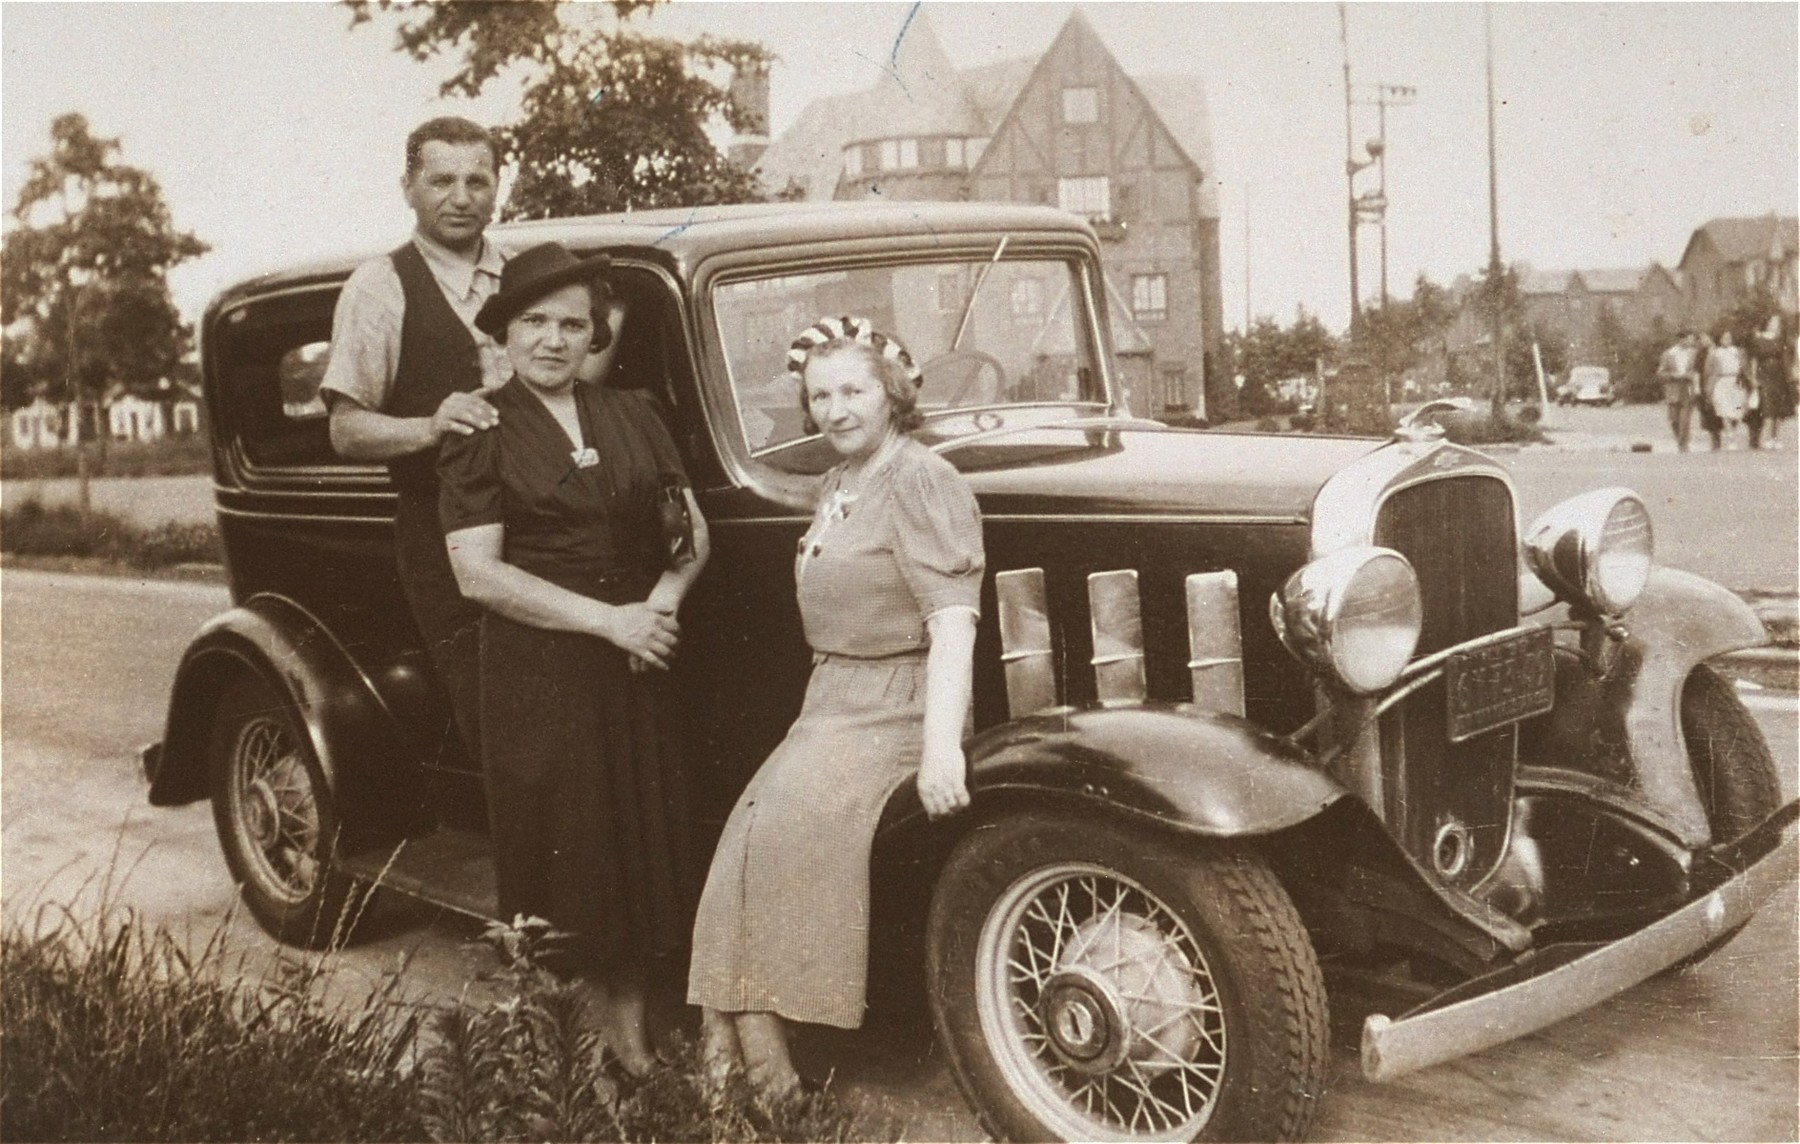 The donor's mother, Chaya Gar, poses with friends next to a car during her return visit to Kron in the summer of 1938.